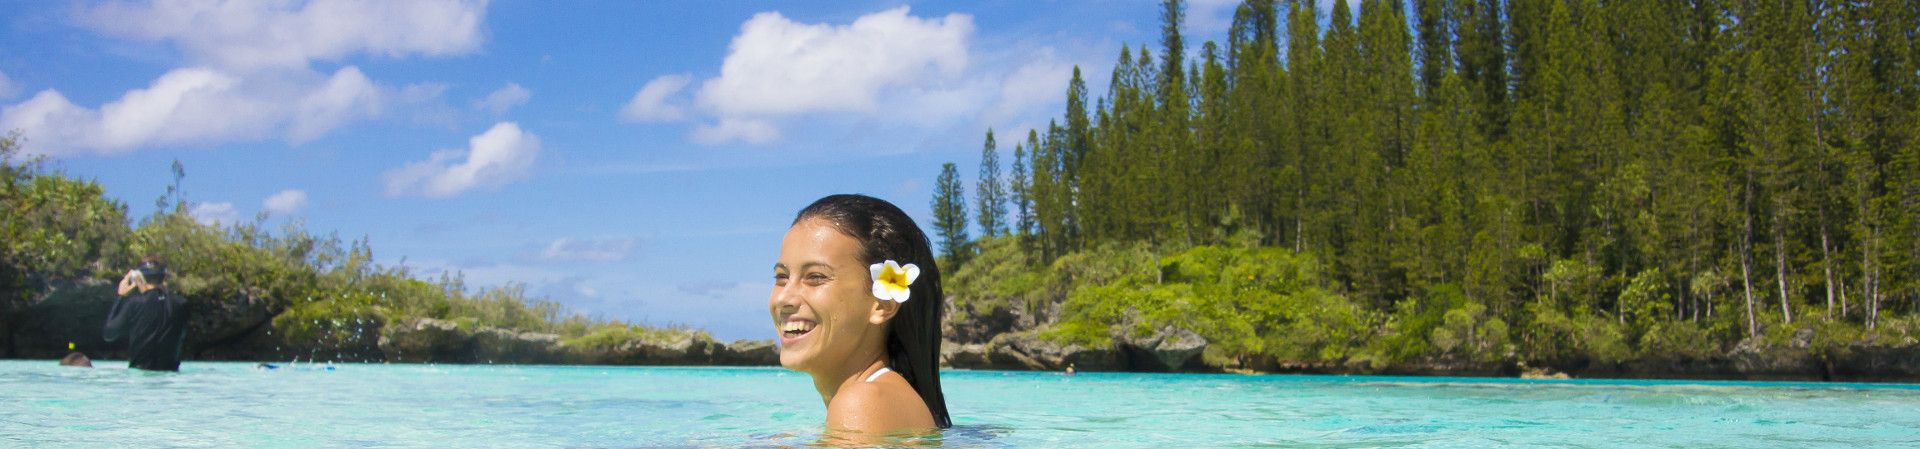 Travel to new caledonia islands province and isle of pines for Piscine naturelle ile des pins